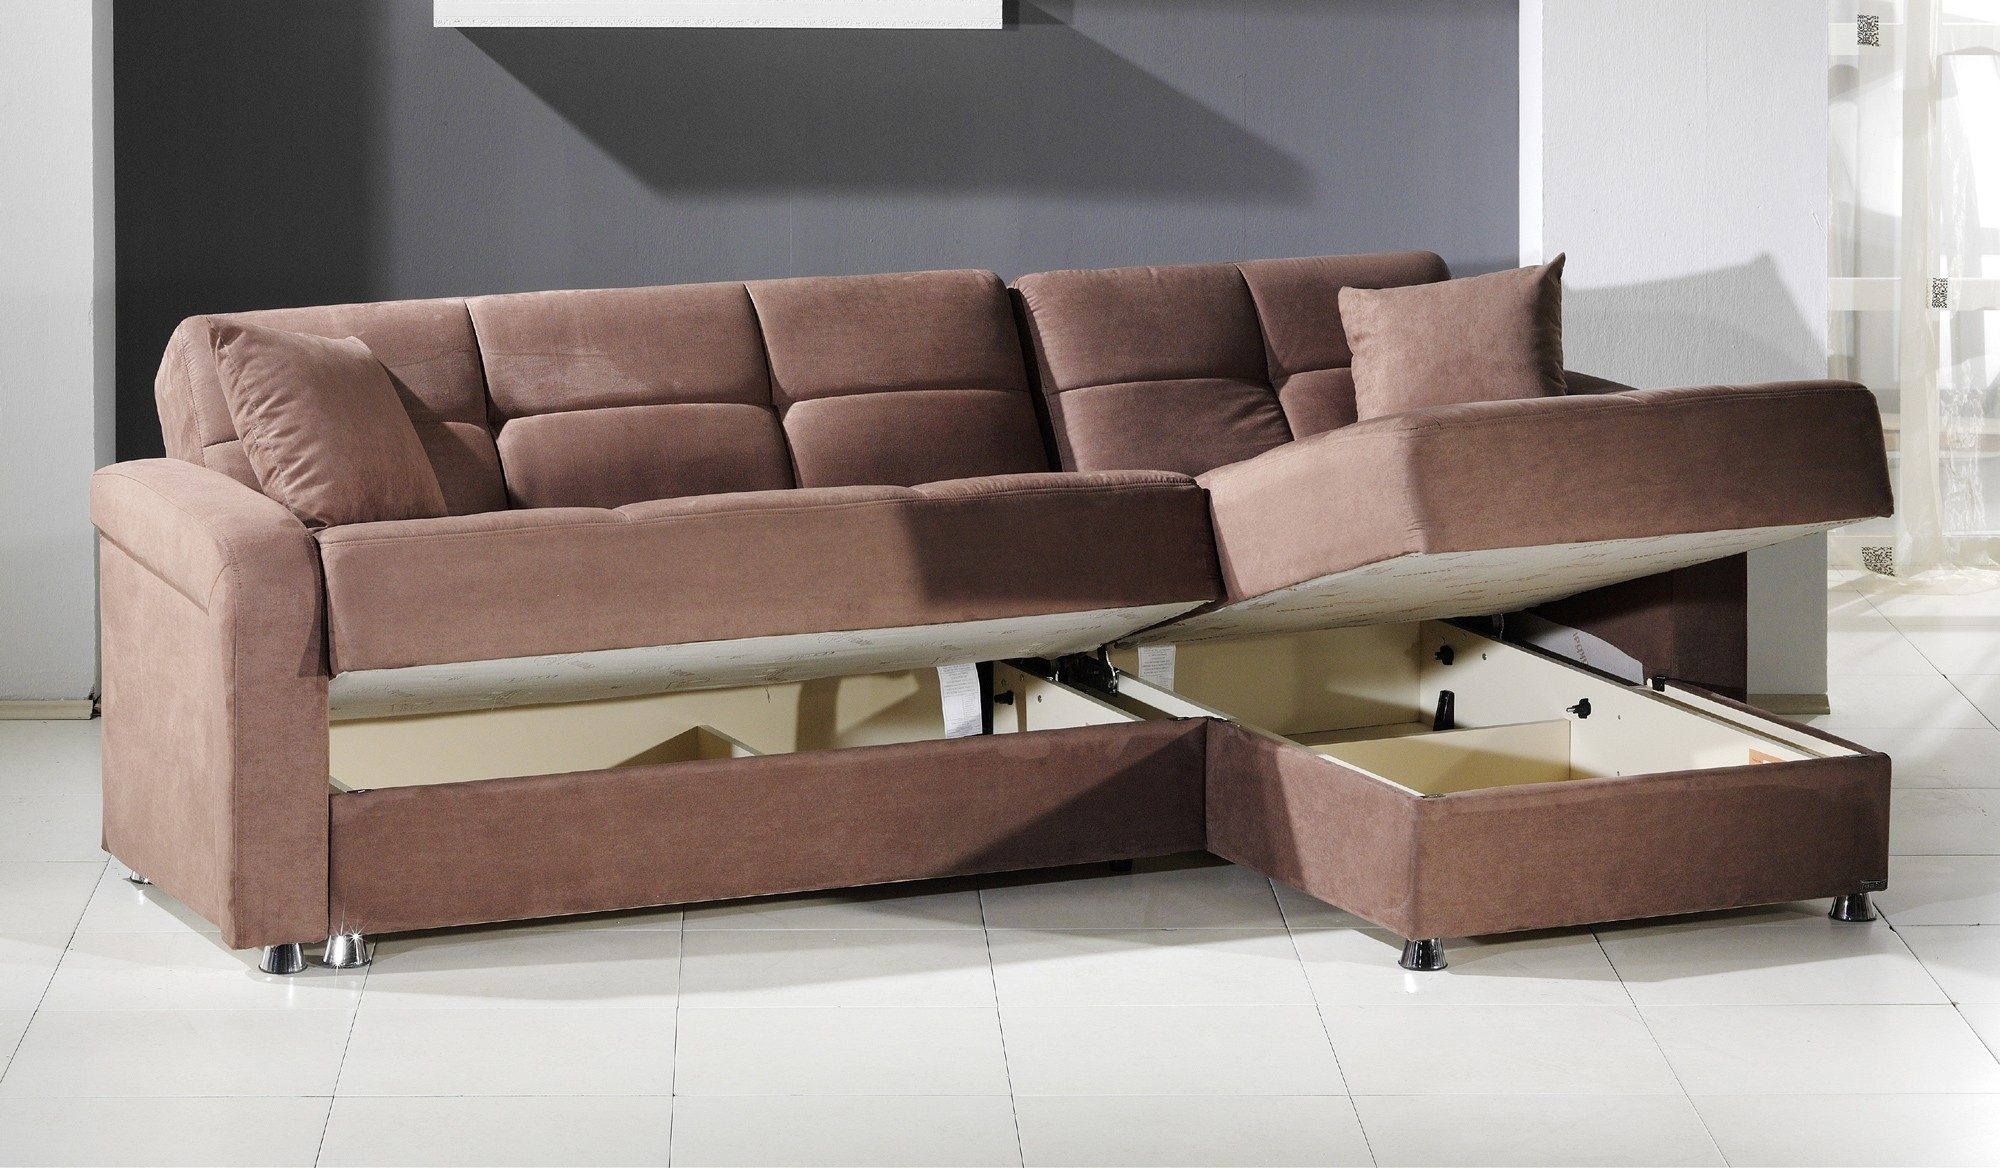 Simple Sectional Sofas With Storage 82 About Remodel Leather Sofa With Regard To Leather Sofas With Storage (View 7 of 10)